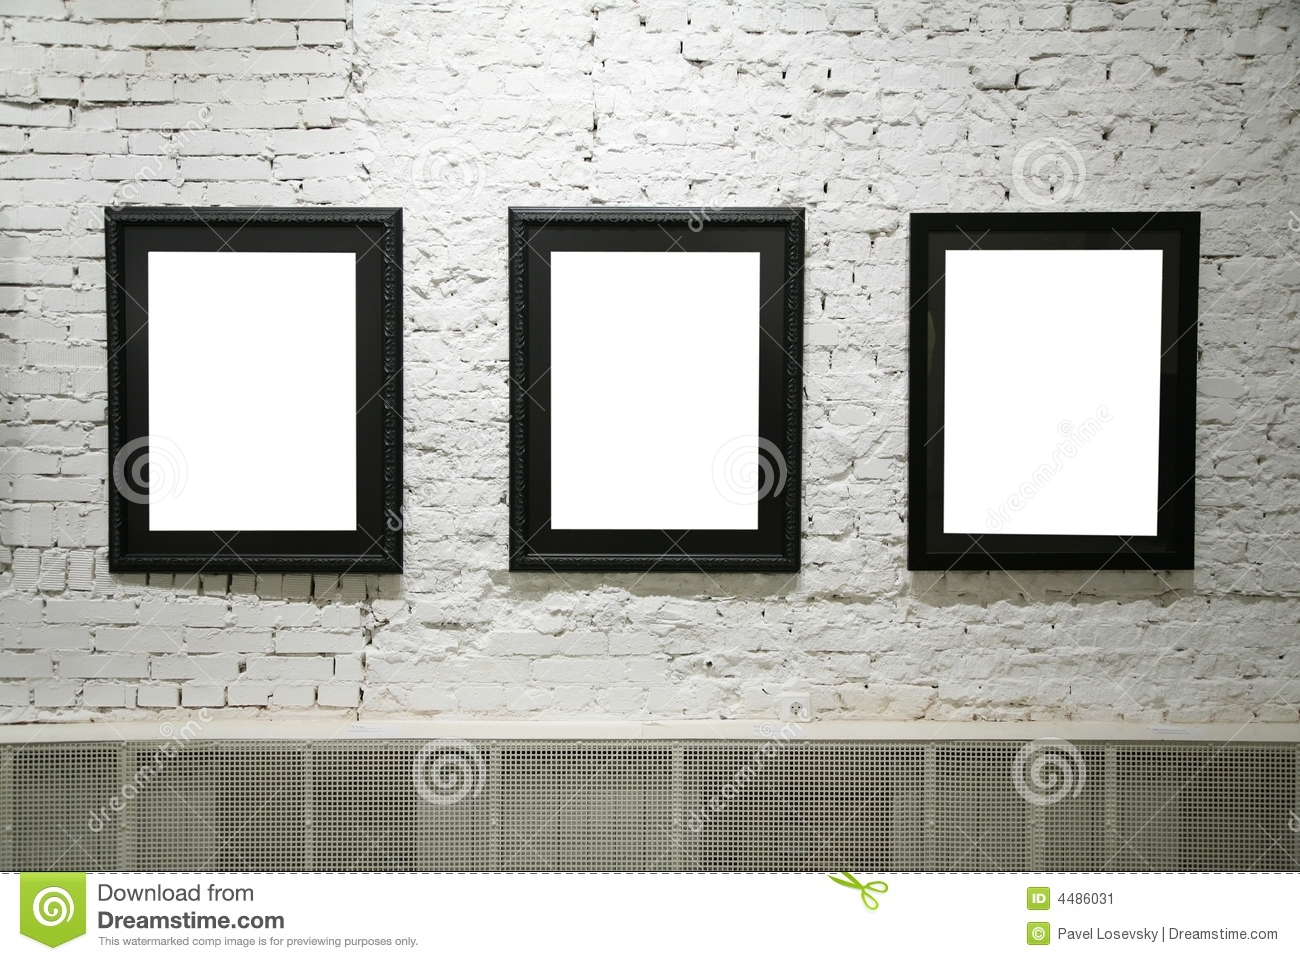 Black frames on white brick wall